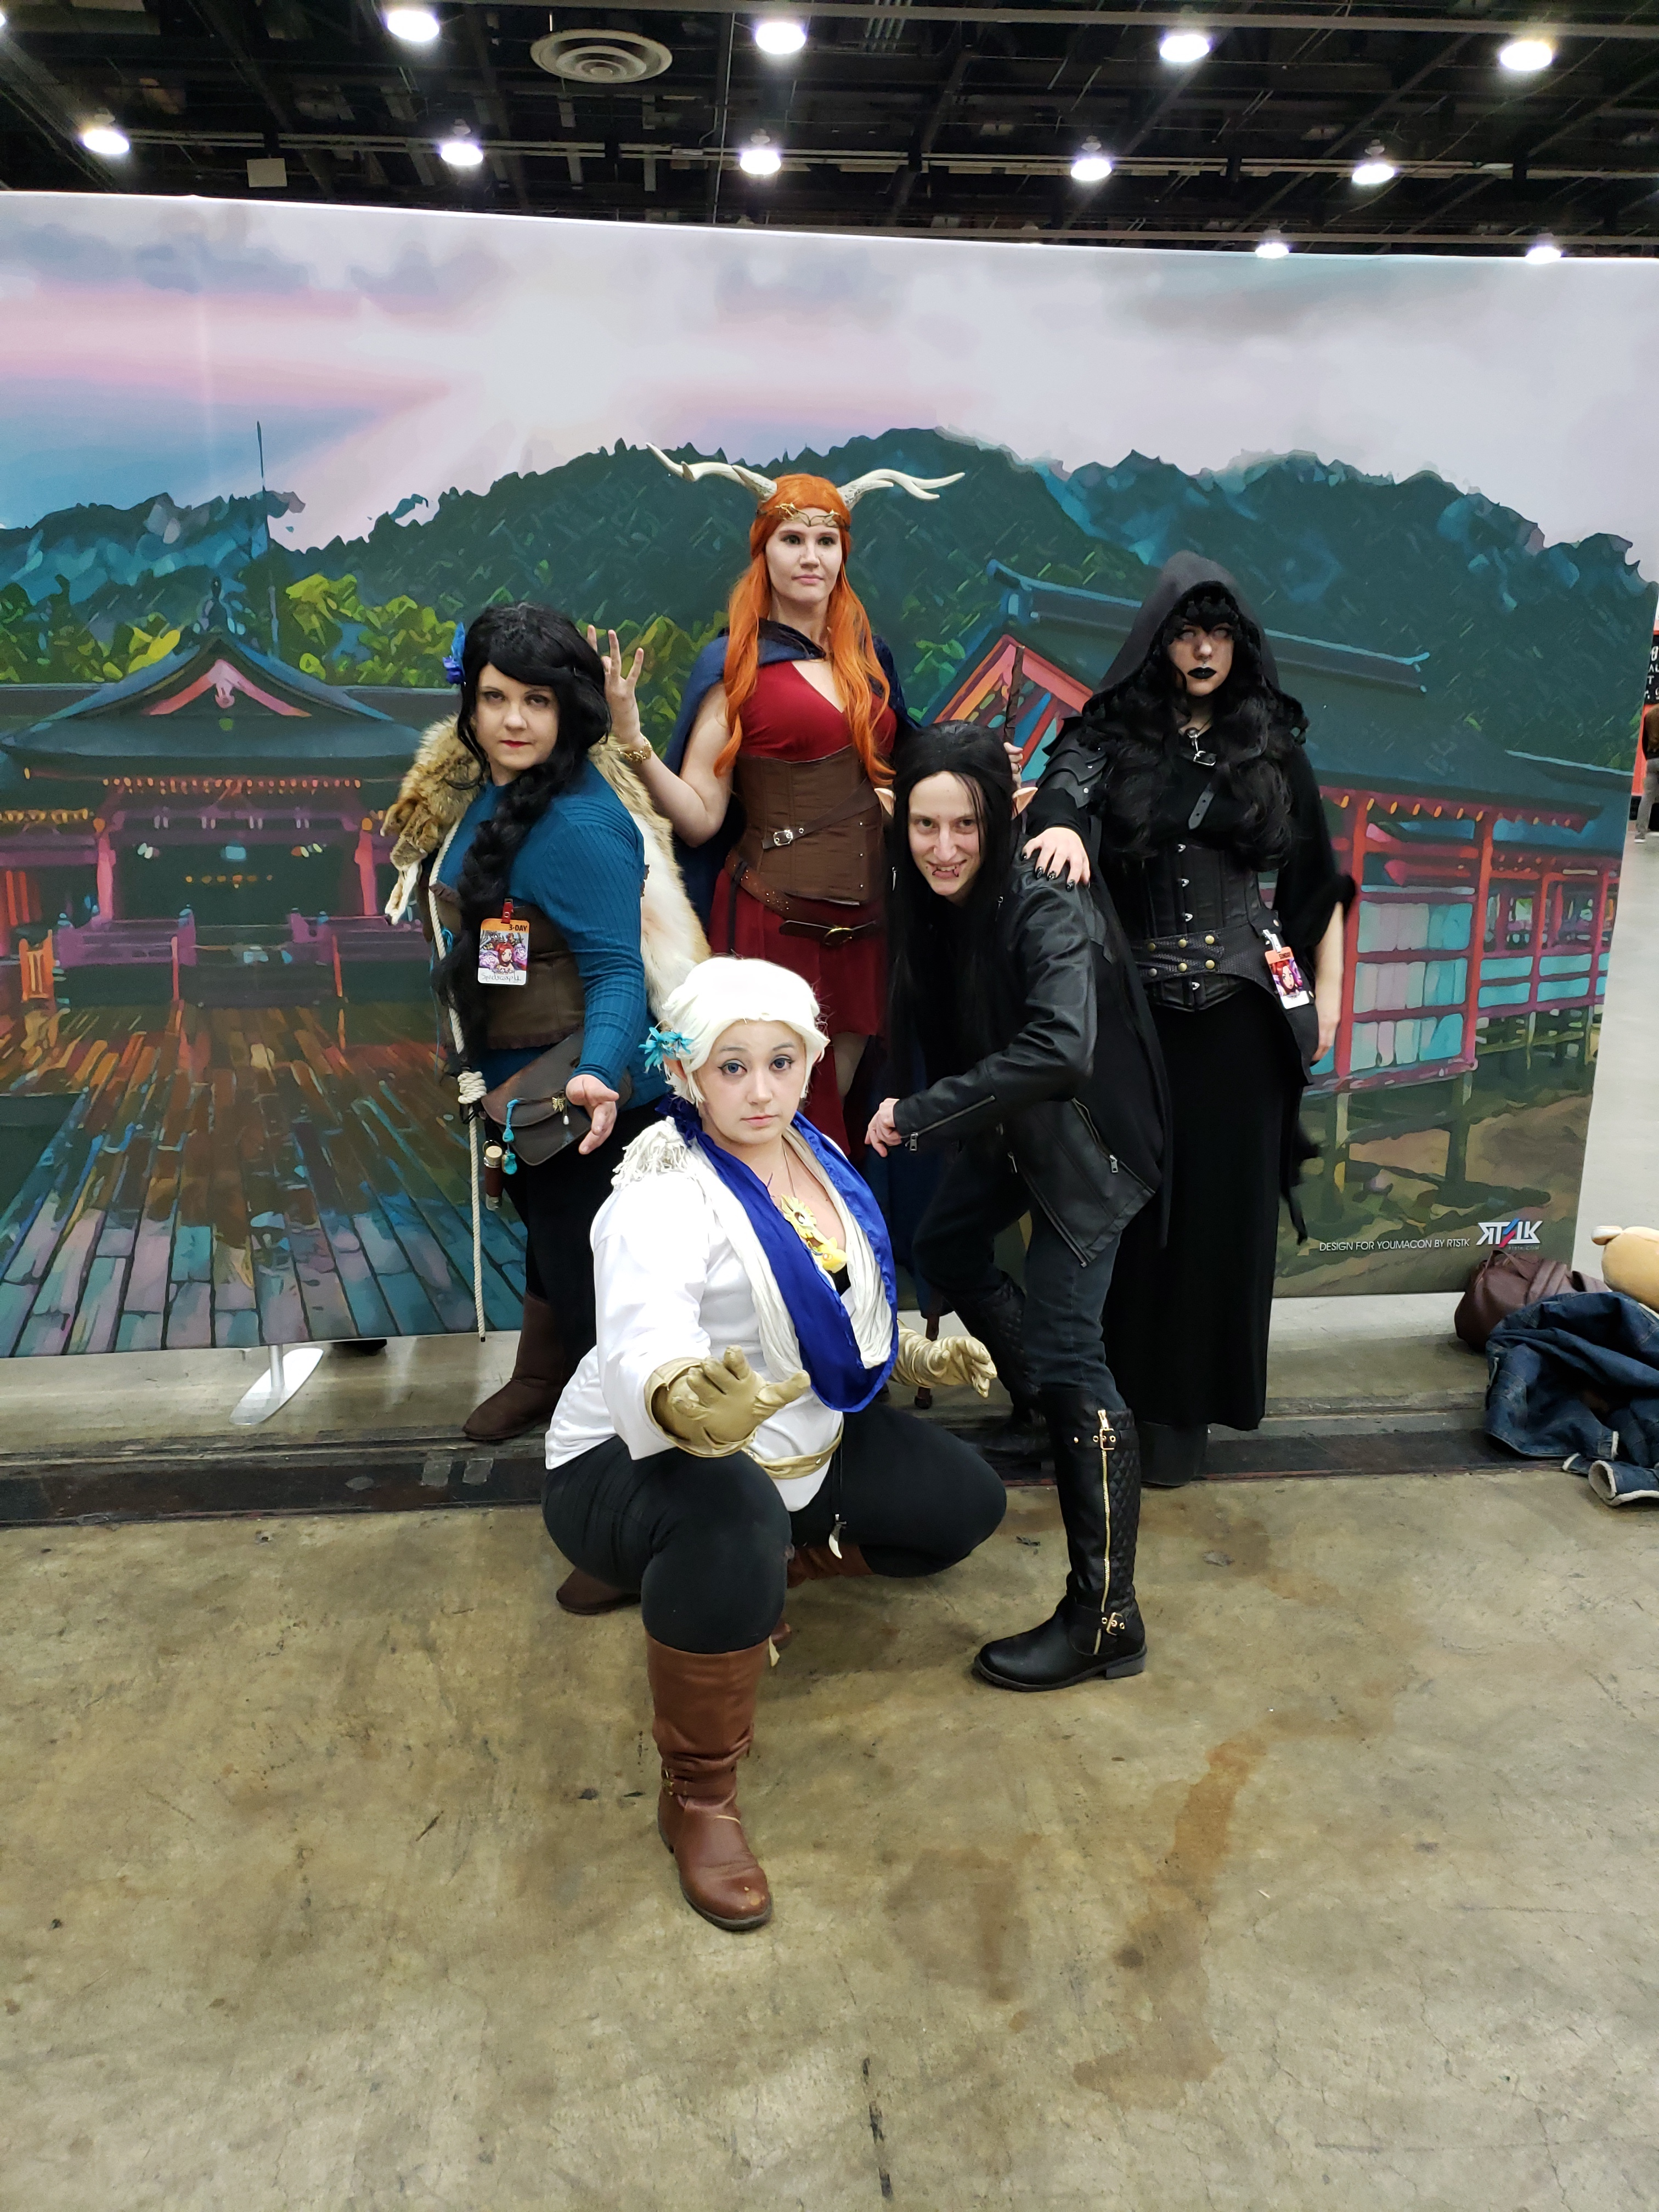 Three people cosplaying as various characters